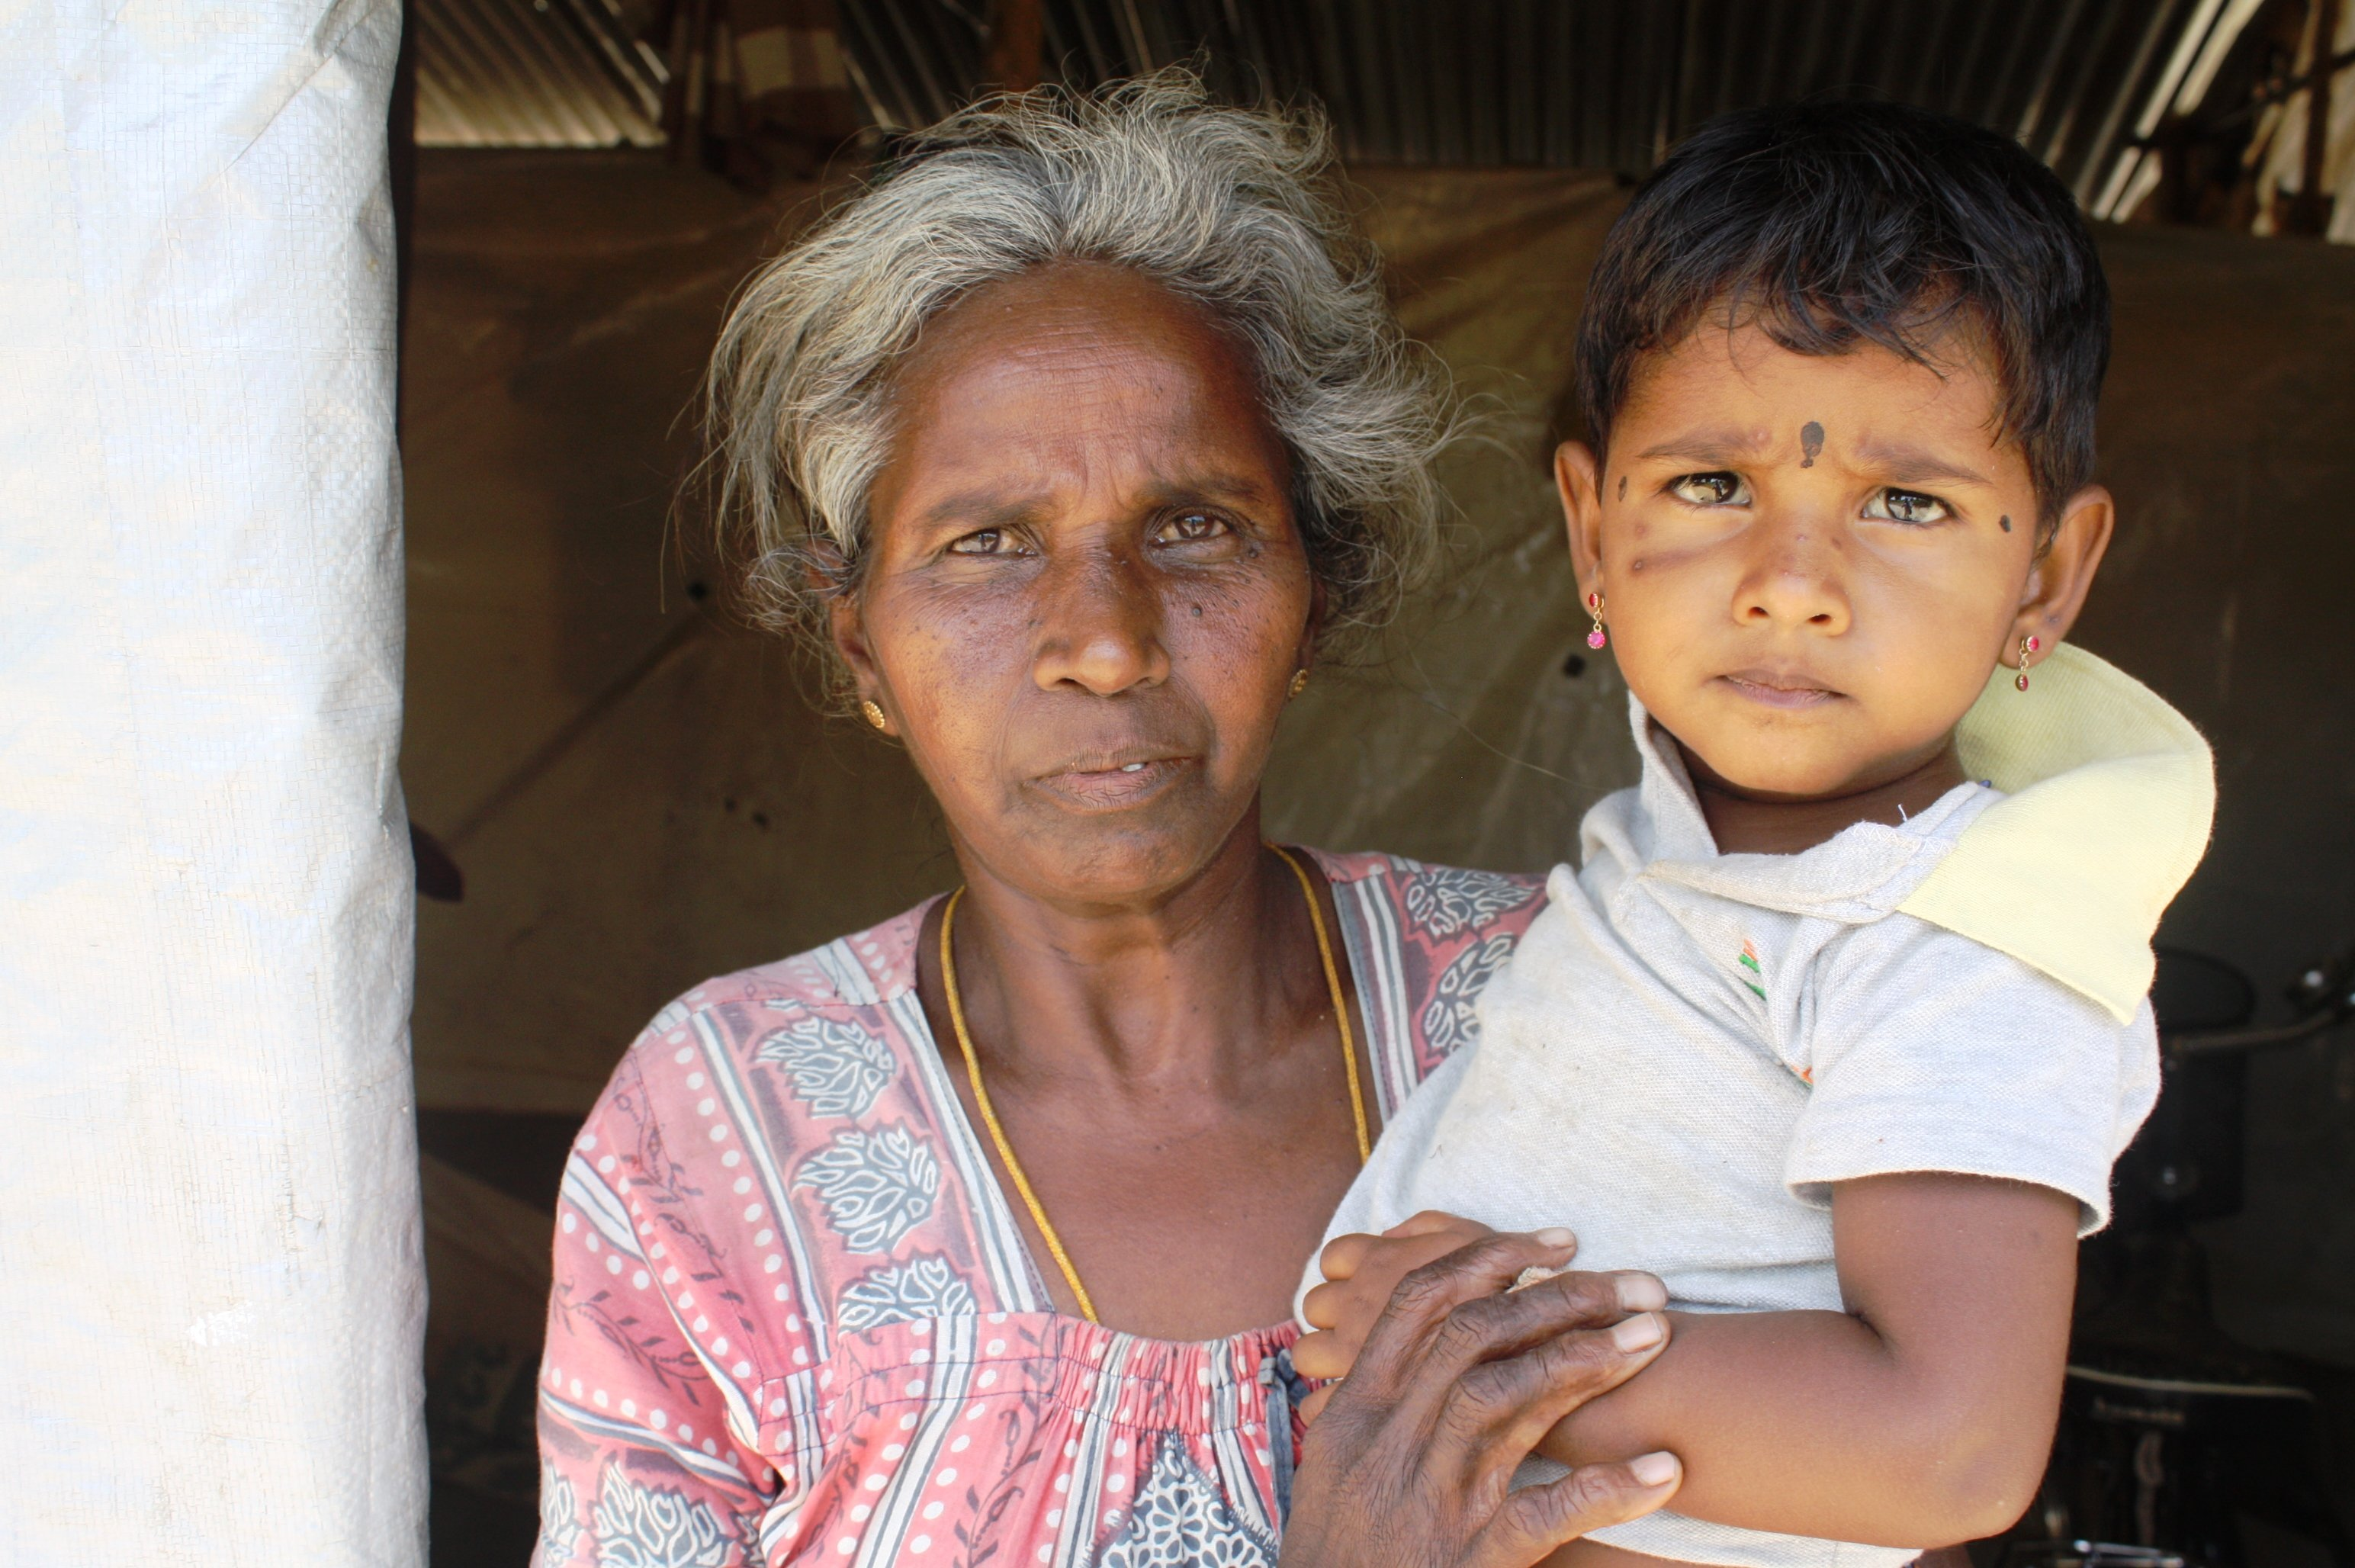 Thangeswary Karuppaiyah, a 55-year-old grandmother and recent returnee to Kilinochchi District, has lived in transitional for more than three years